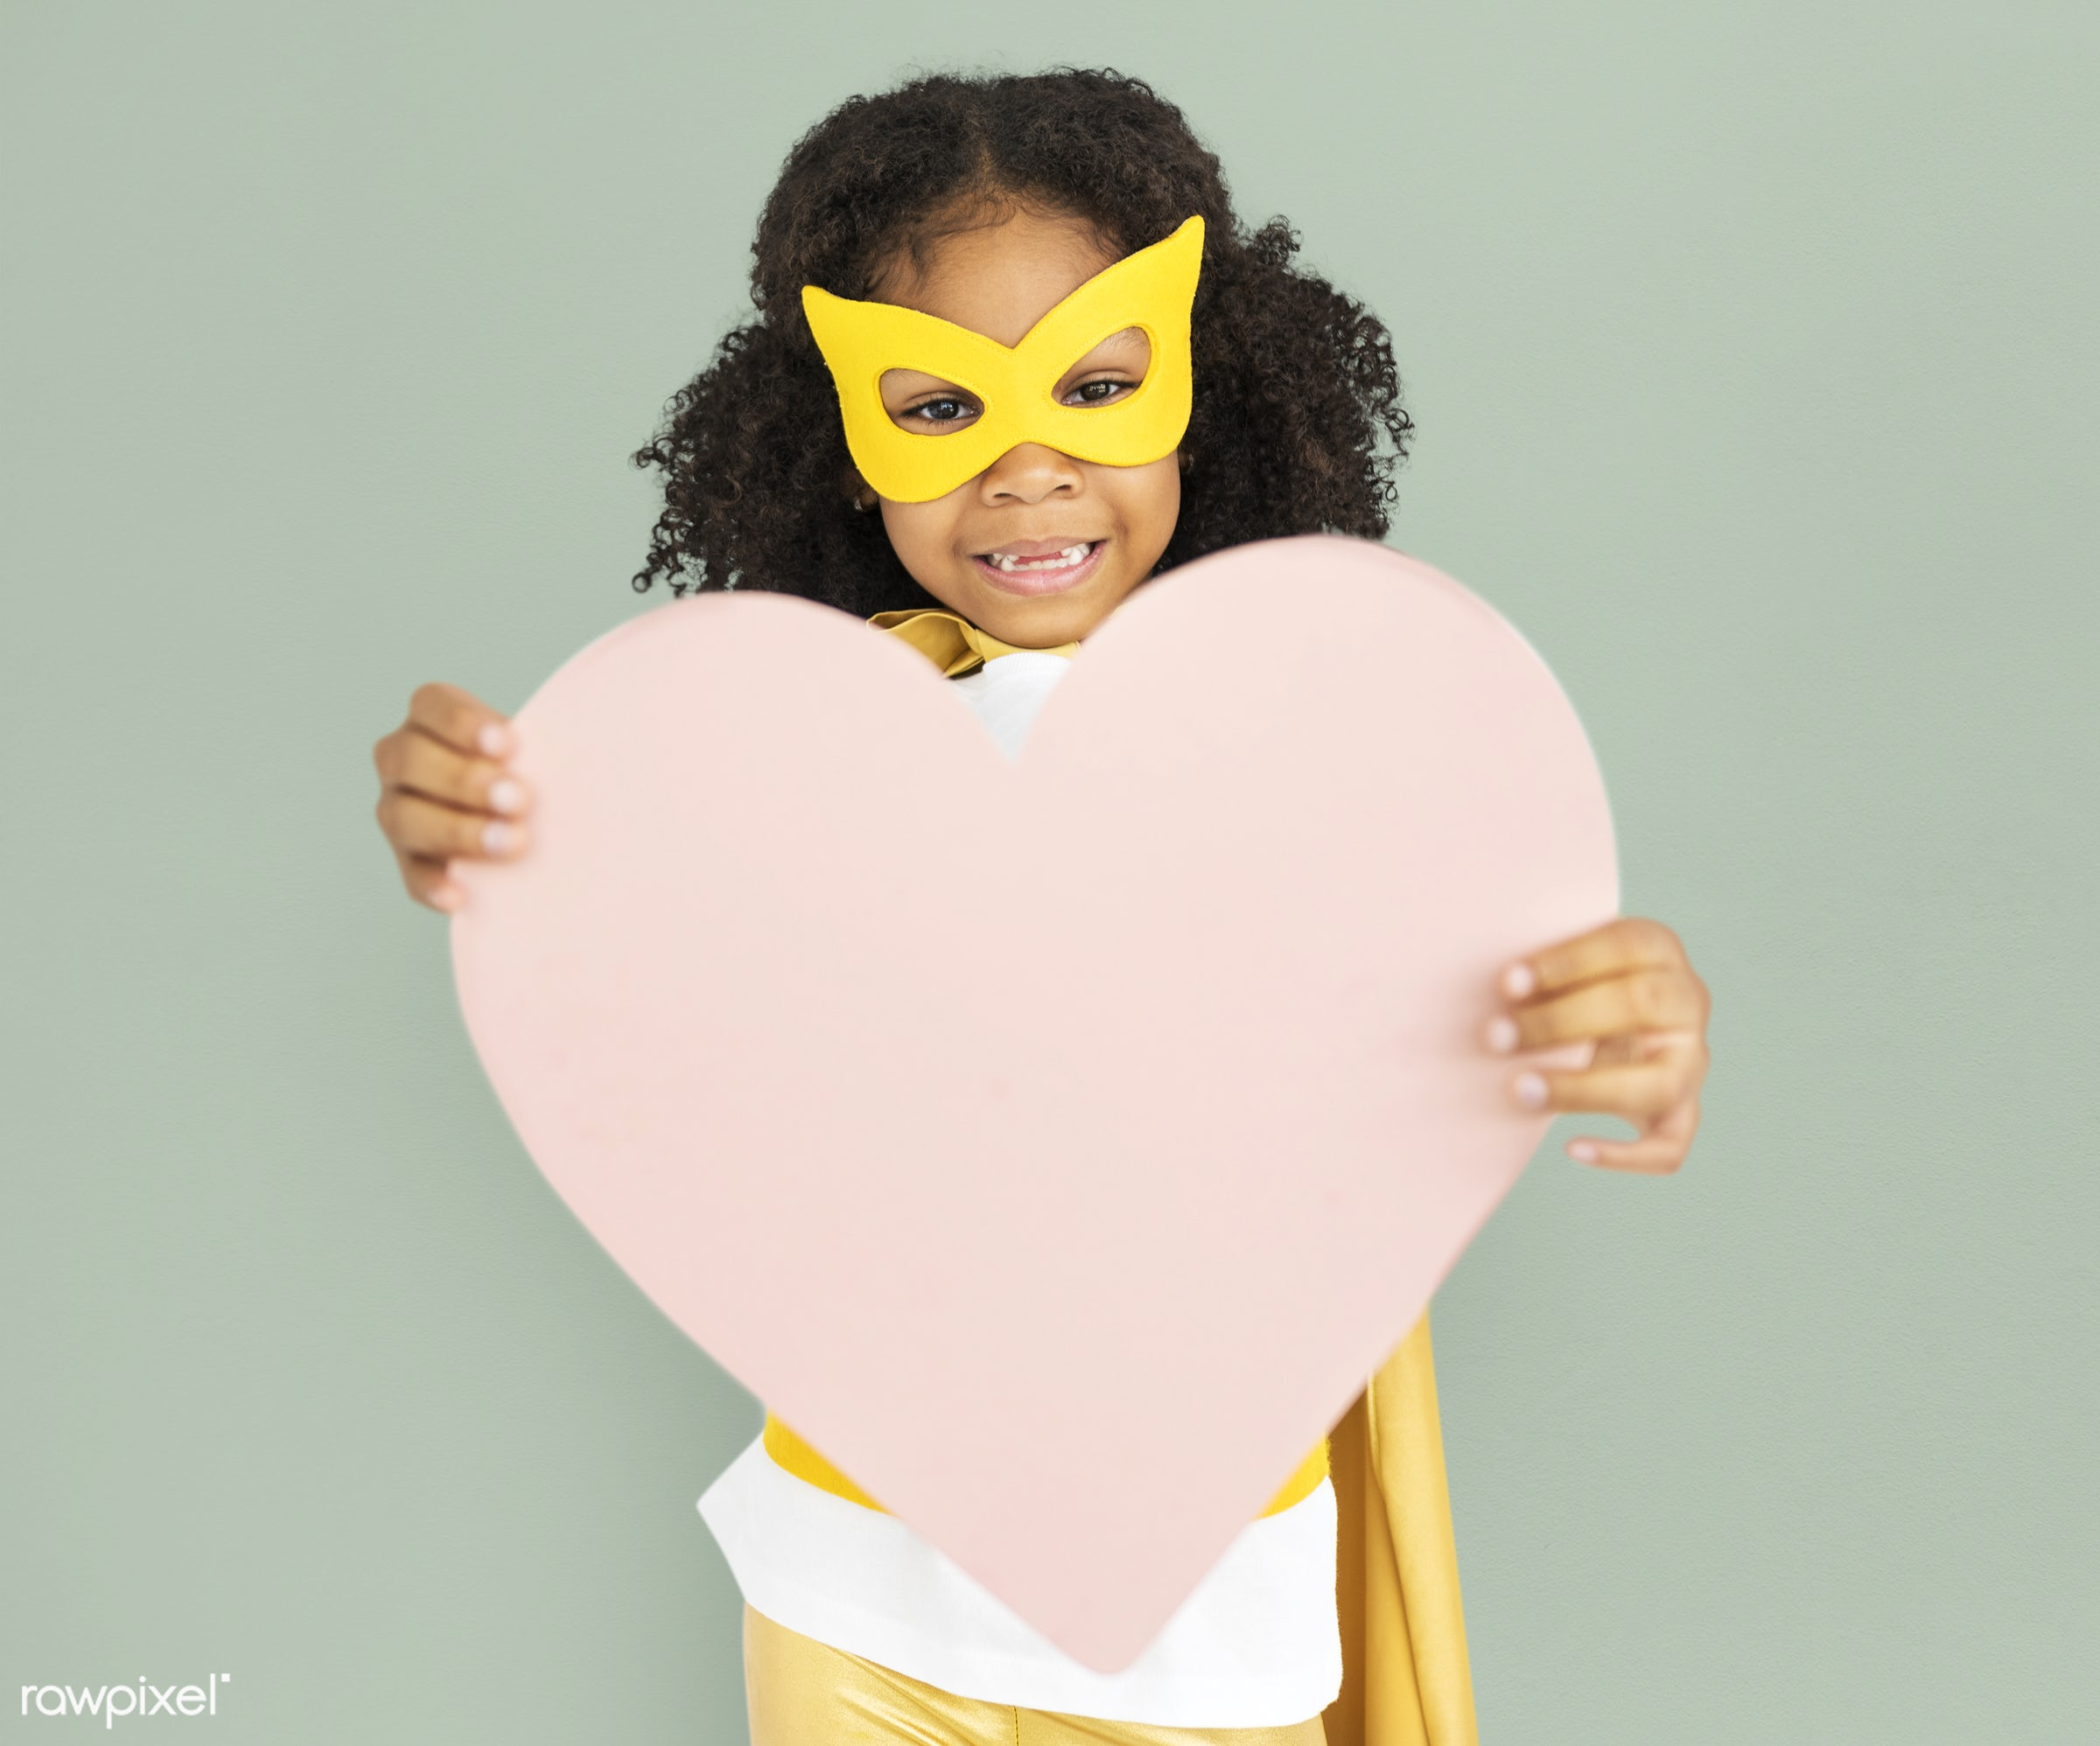 expression, studio, person, cape, joy, little, mask, cute, people, kid, love, girl, smile, cheerful, smiling, superhero,...